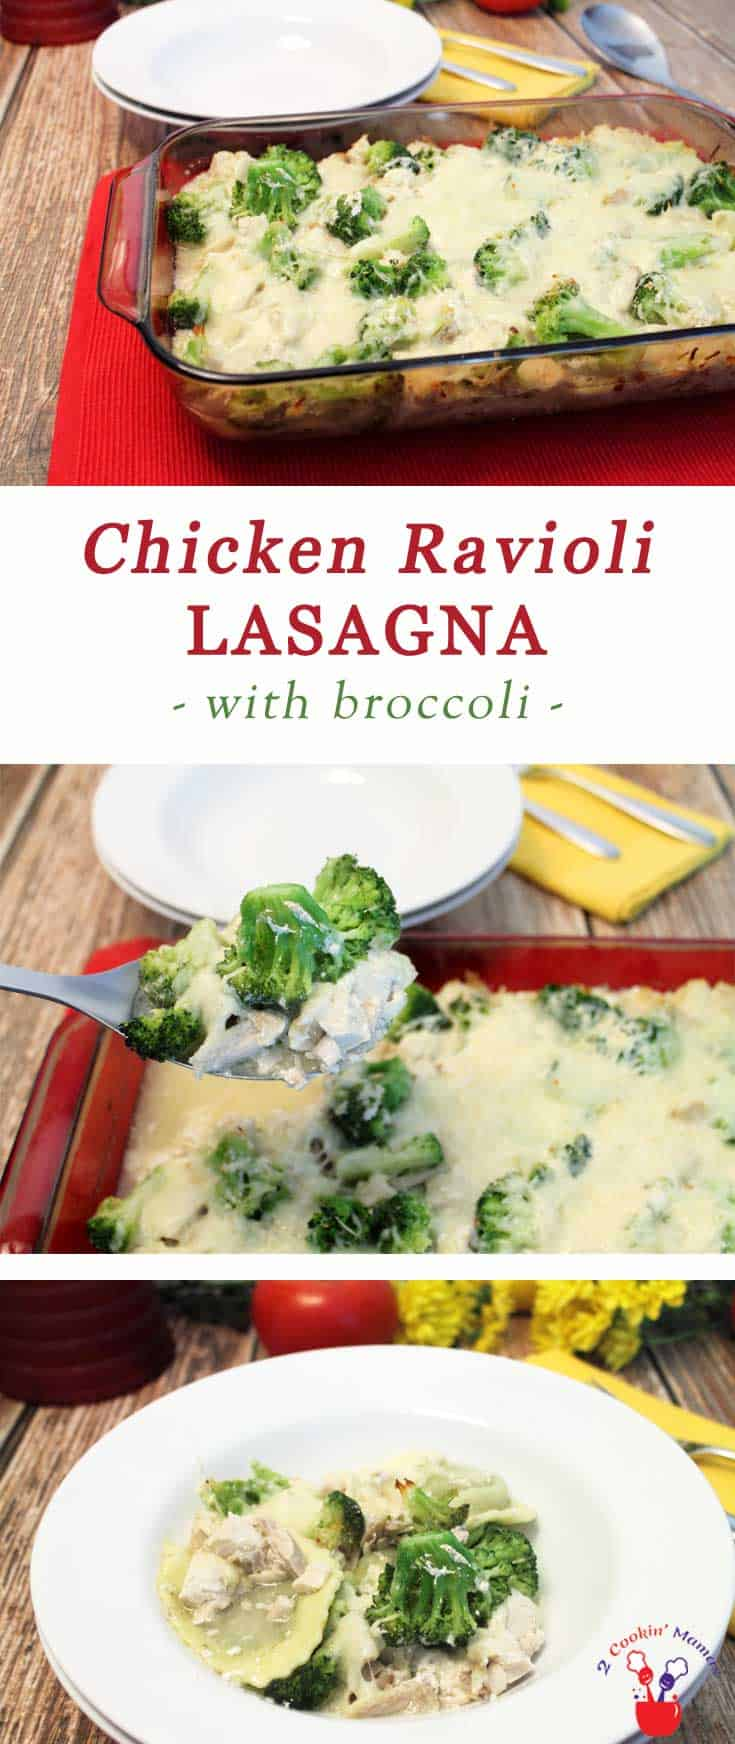 Chicken Ravioli Lasagna | 2 Cookin Mamas Chicken Ravioli Lasagna is an easy weeknight casserole. Layers of your favorite ravioli, chicken & broccoli, covered with a creamy sauce & loads of cheese.